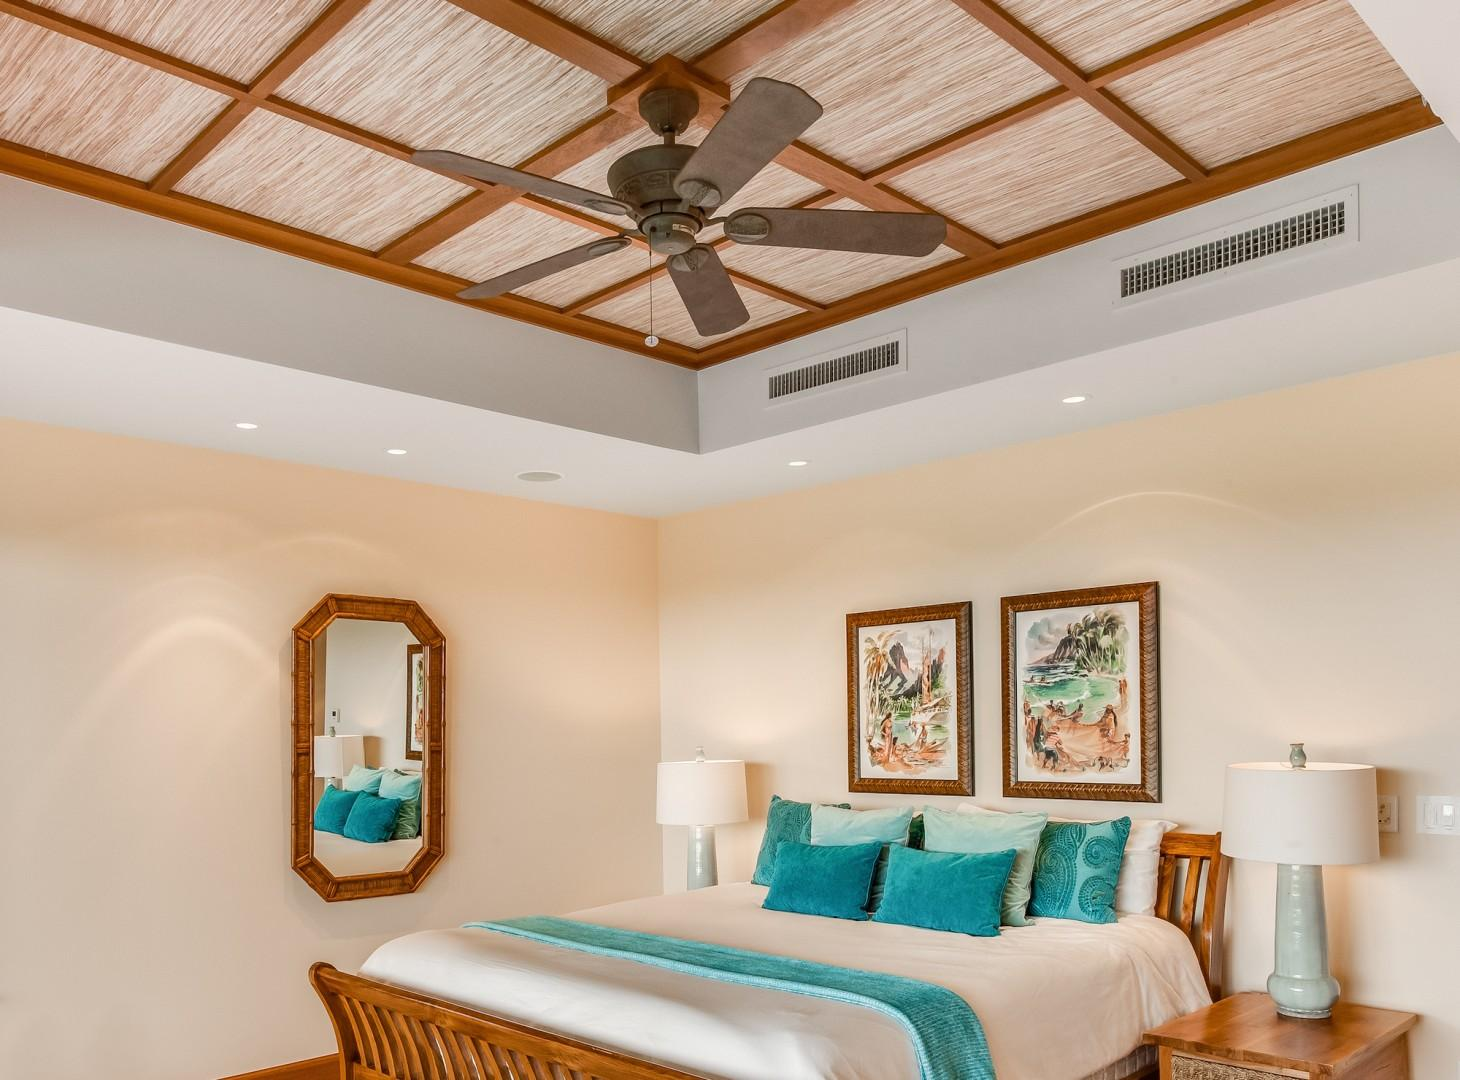 Alternate View of Downstairs Master w/ King Bed, Vaulted Ceilings and Ensuite Bath